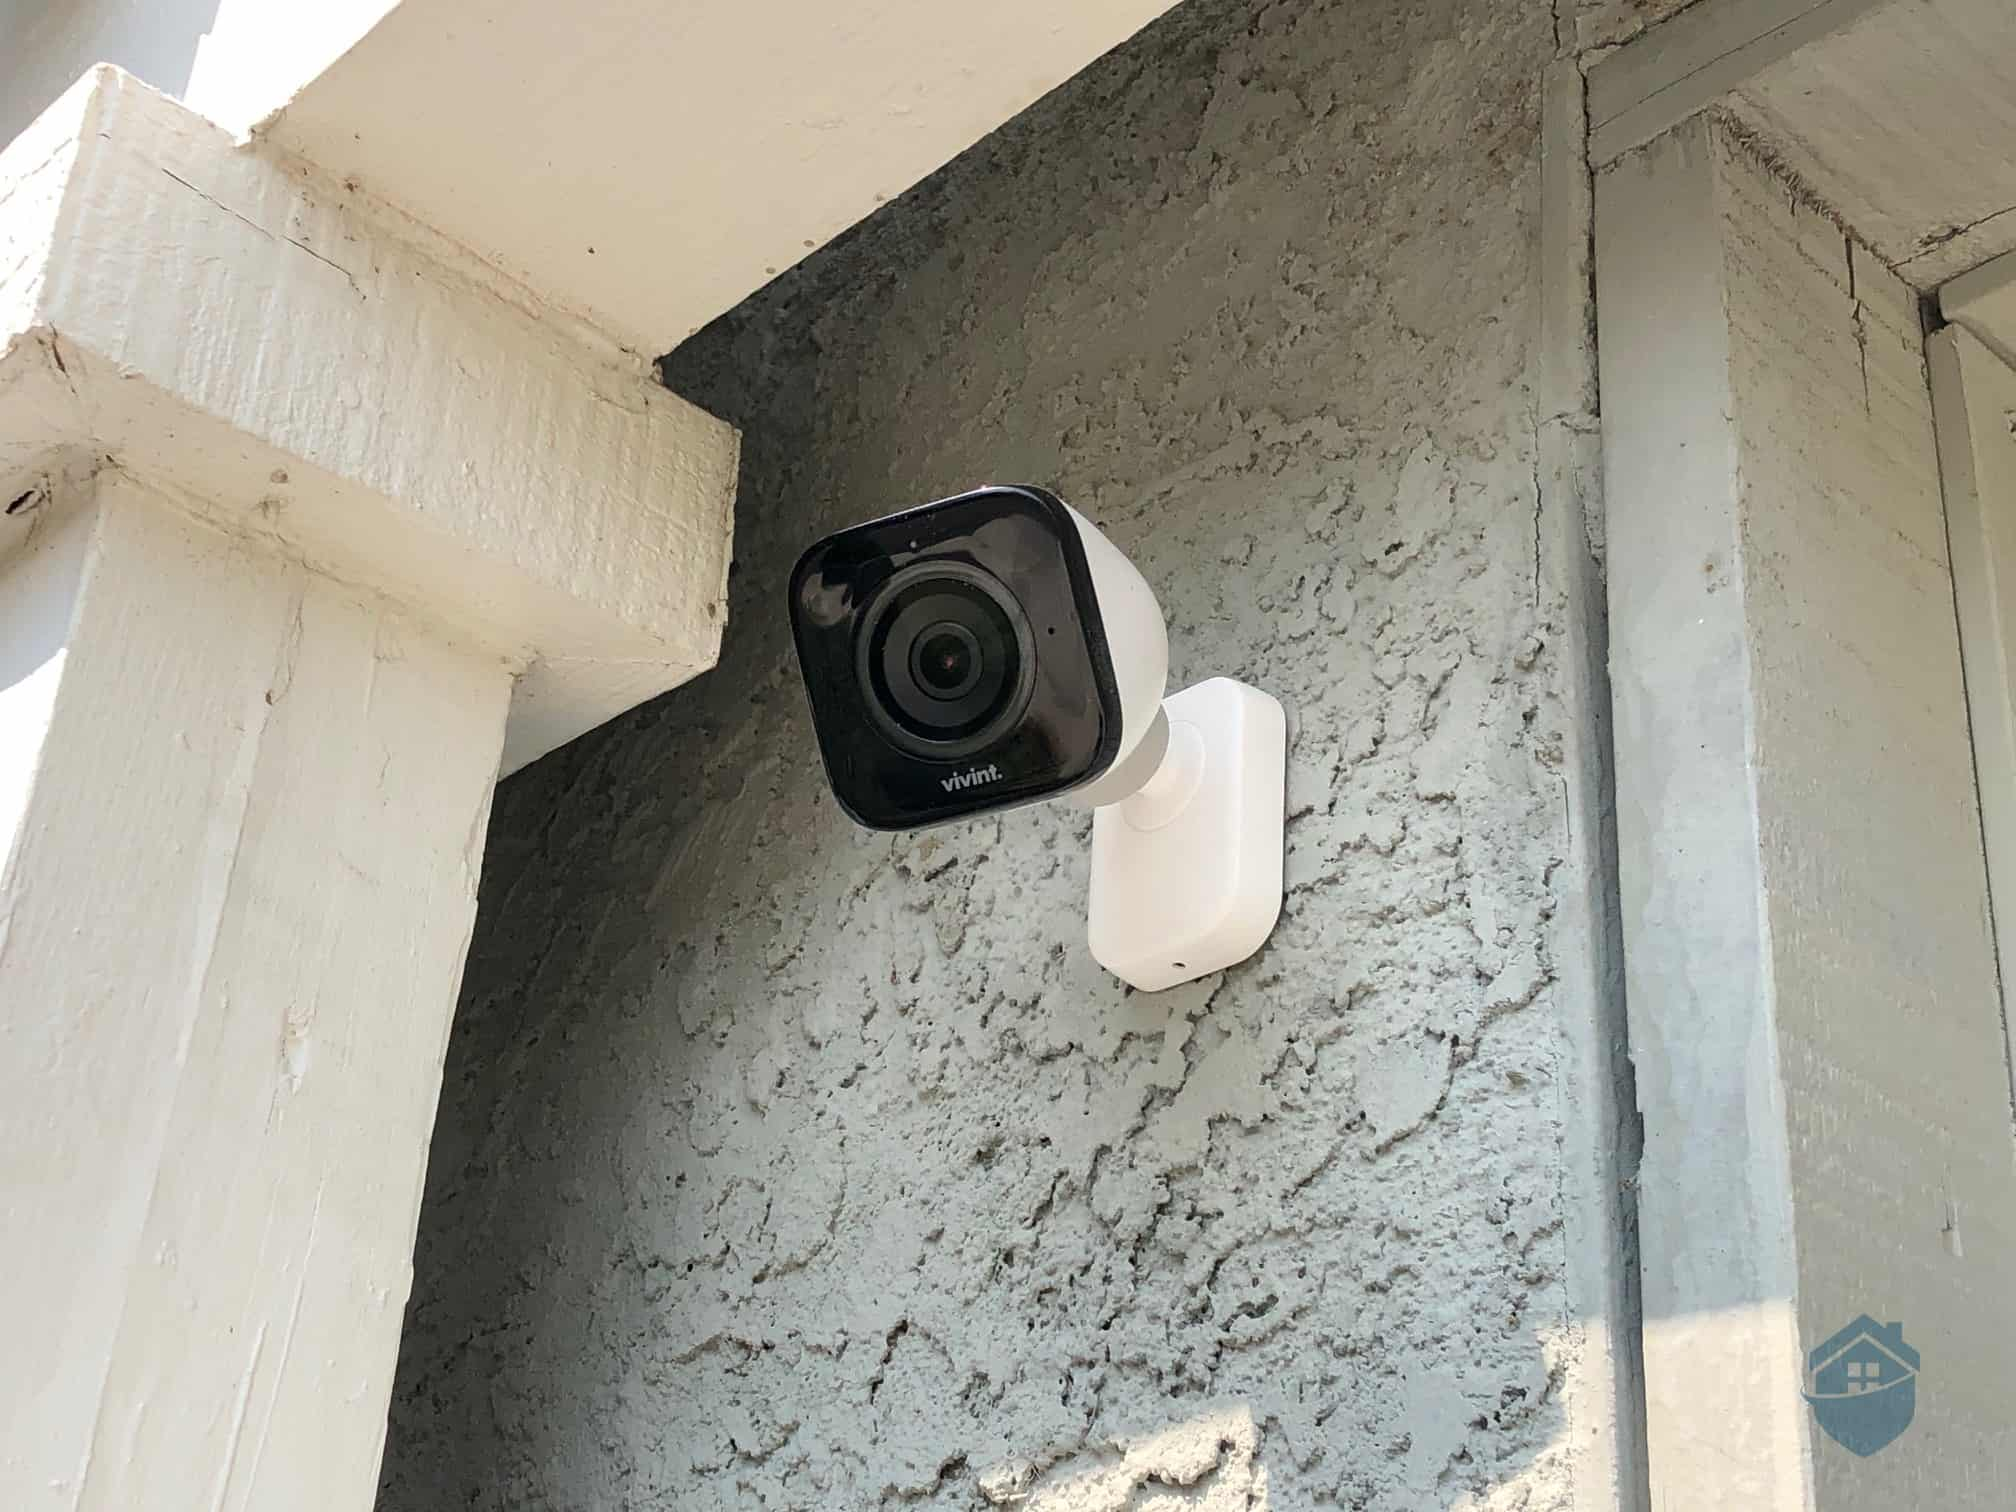 Vivint Doorbell Camera Pro Installed